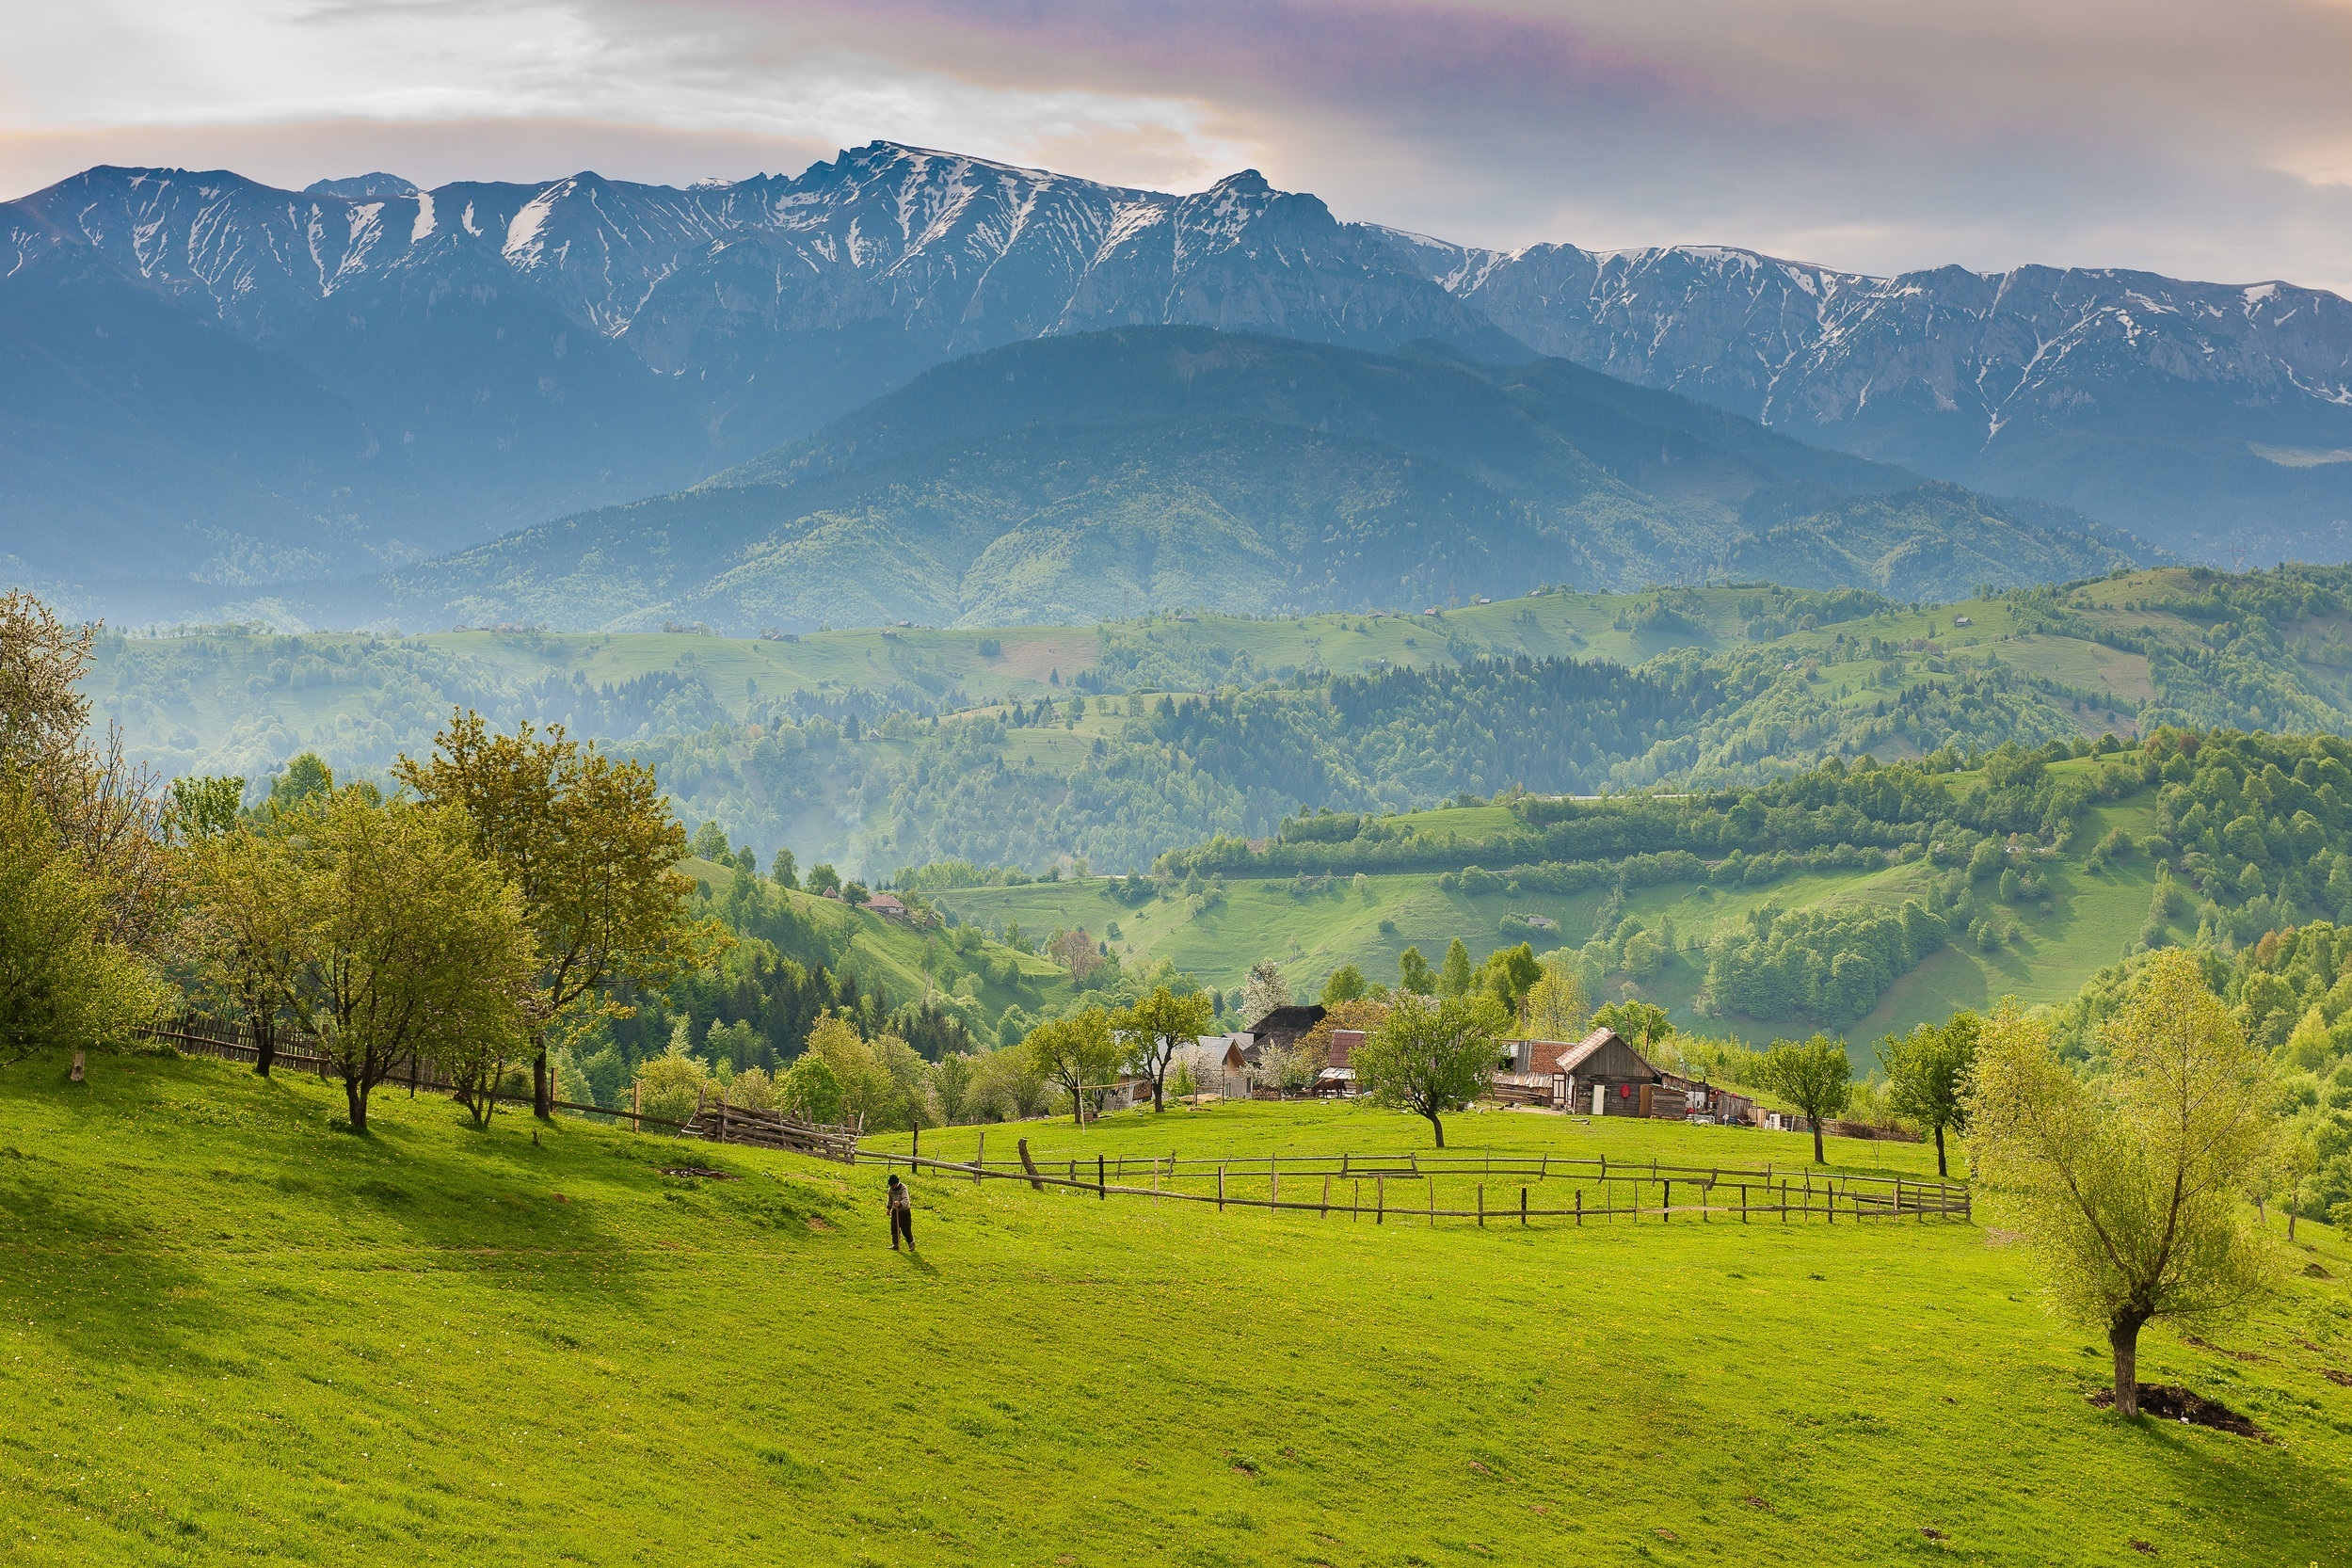 Romania - Visit Dracula's Castle and drink Transylvanian wine with us in Romania!Next Experience: 4th July - 12th July 2020Experiences from £1849Deposit £200